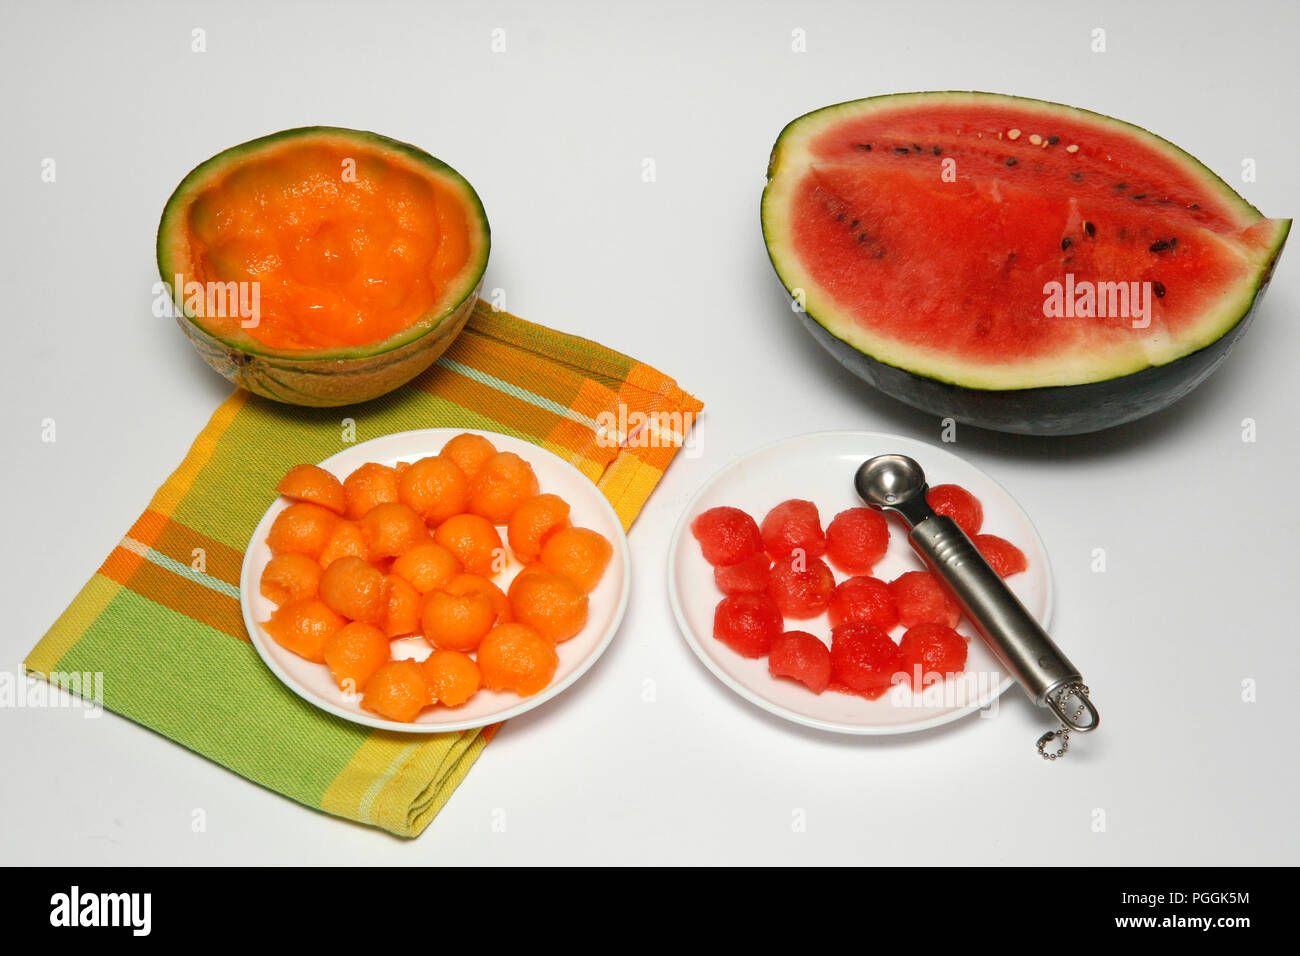 Stuffed melon with fruits and ice cream. Step by step. Prepared dish: BNH06T - Stock Image